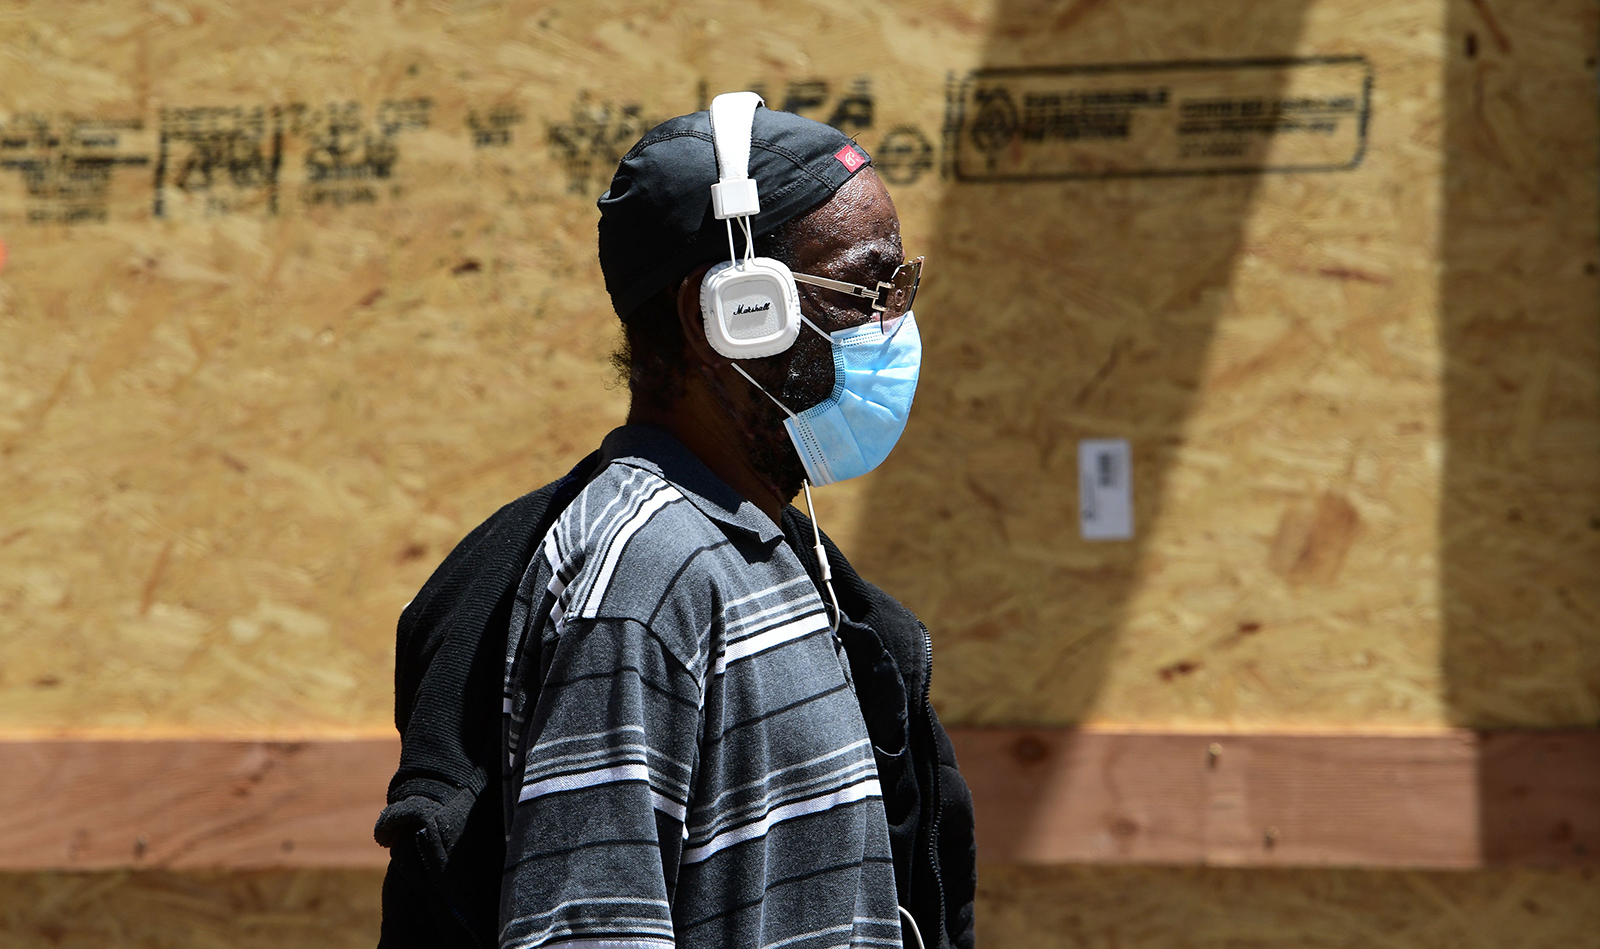 A pedestrian wears a face mask while walking past boarded up shopfronts in Los Angeles, on June 10.